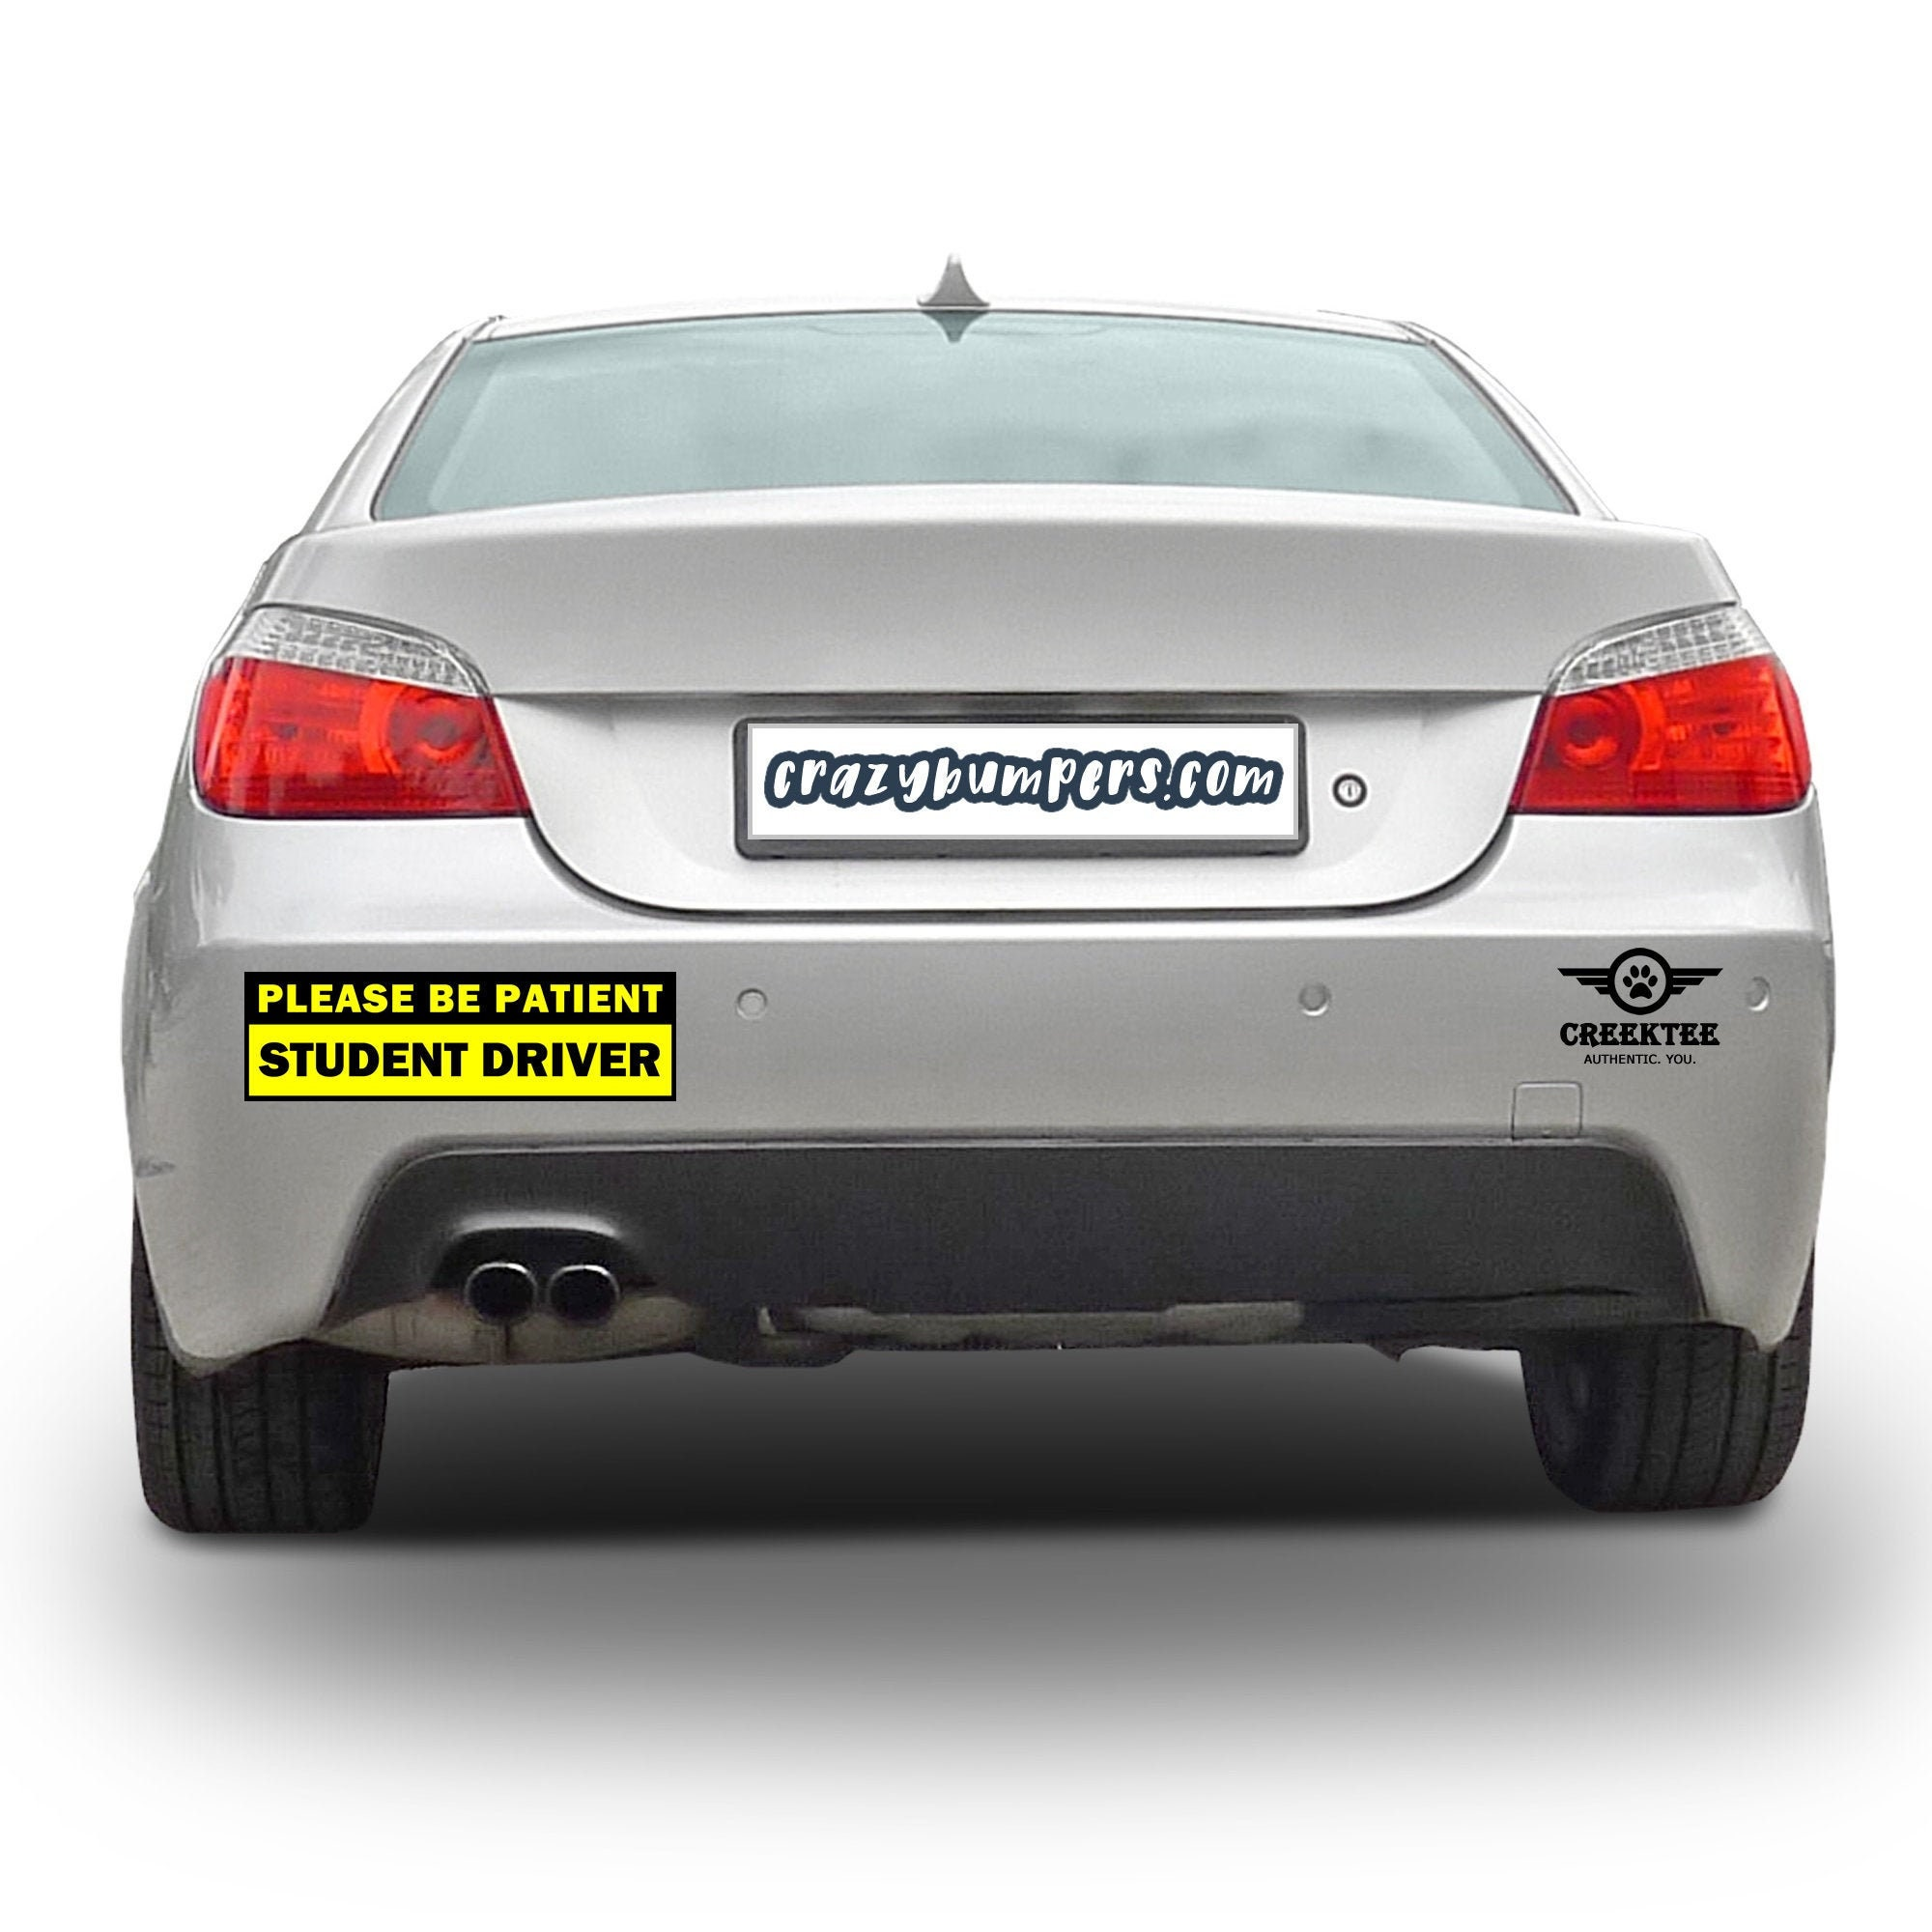 CAD$7.99 - UV Protected Please Be Patient Student Driver Bumper Sticker 10 x 3 Bumper Sticker or Magnetic Bumper Sticker Available